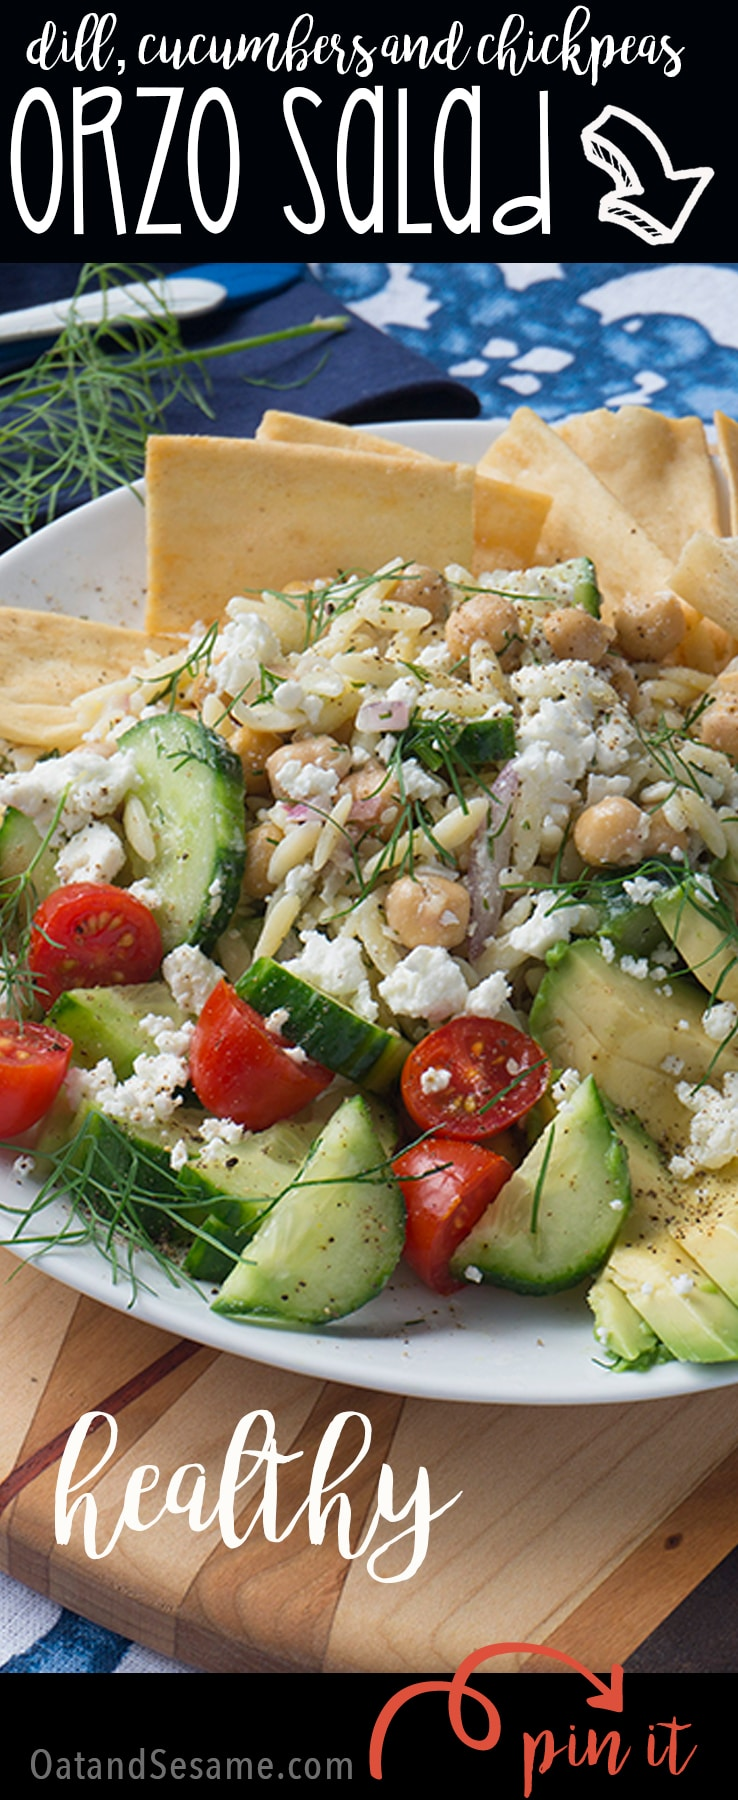 Orzo pasta, cucumbers, tomatoes on plate with feta and pita chips